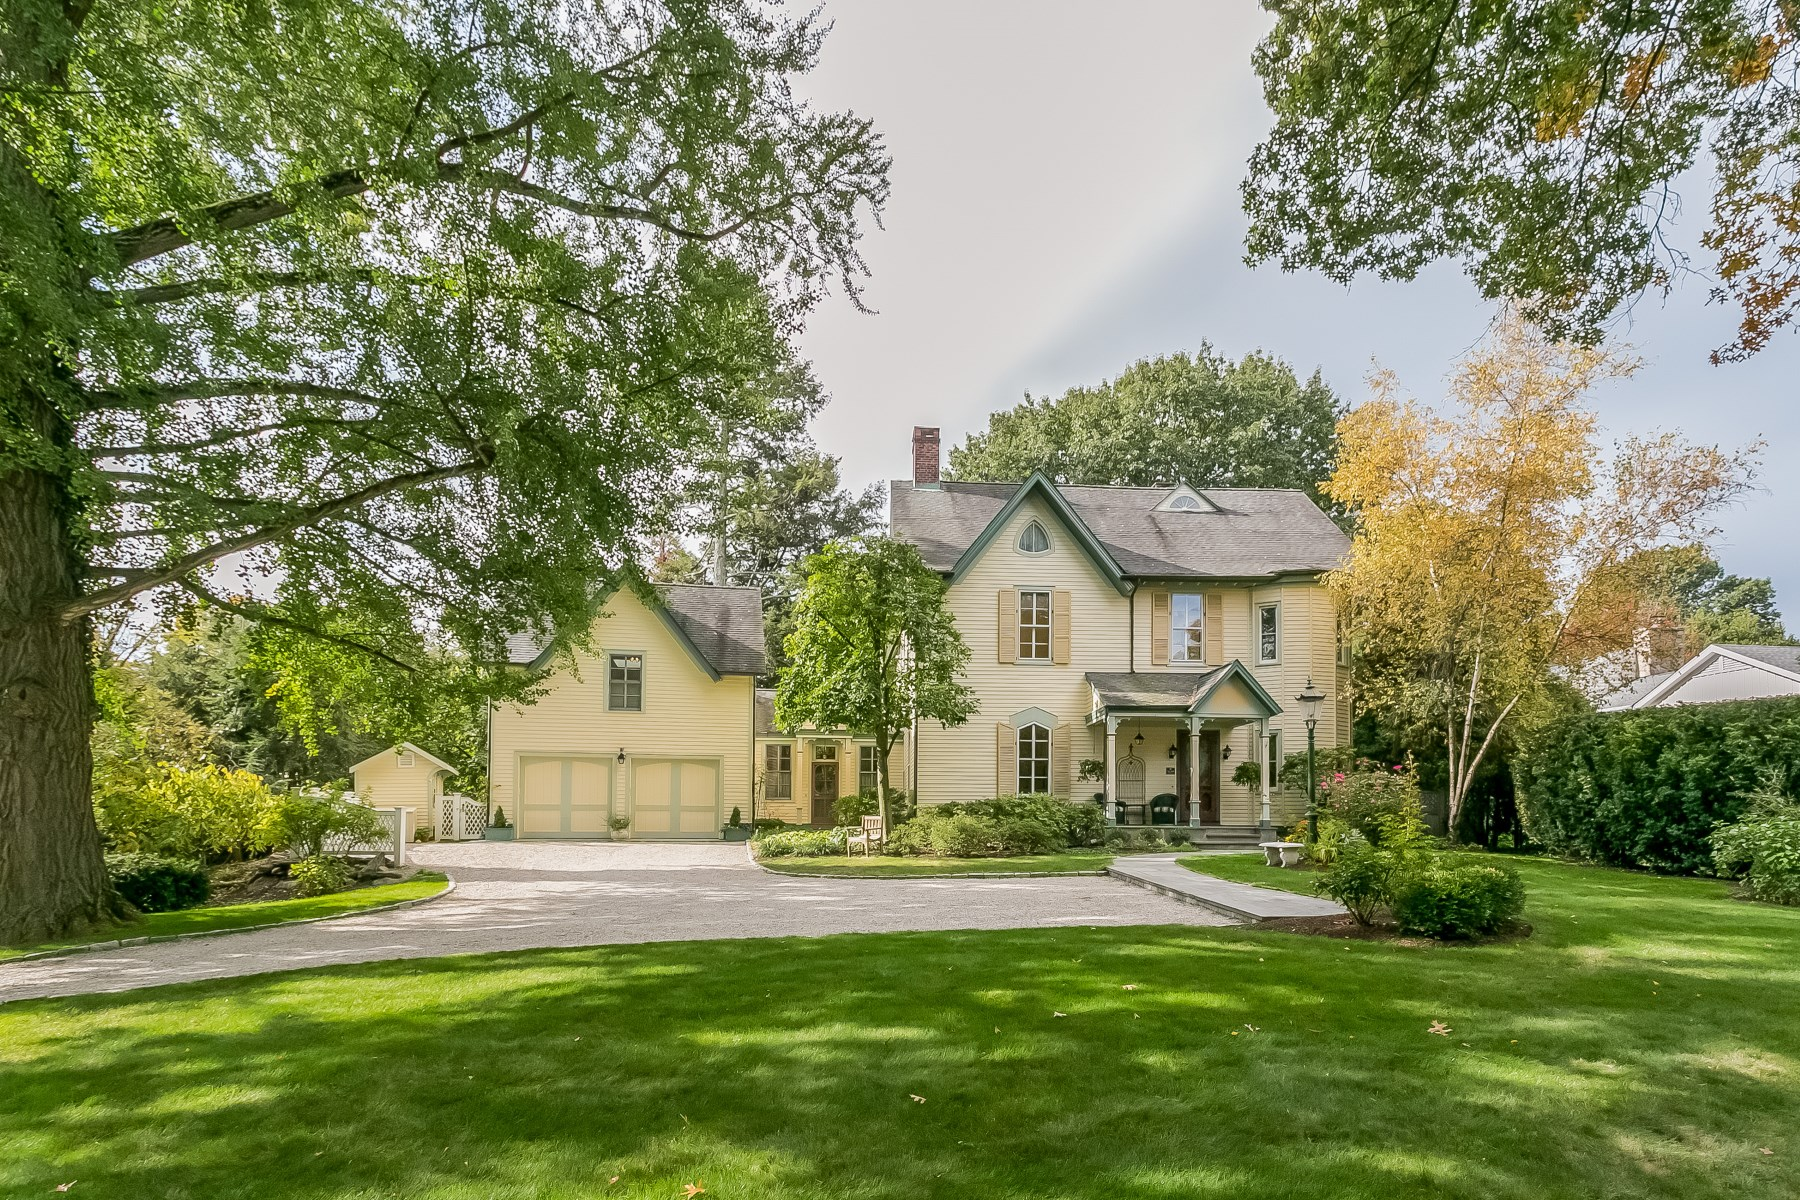 Single Family Home for Sale at Timelessly Appealing Riverside Classic 150 Riverside Avenue Riverside, Connecticut, 06878 United States